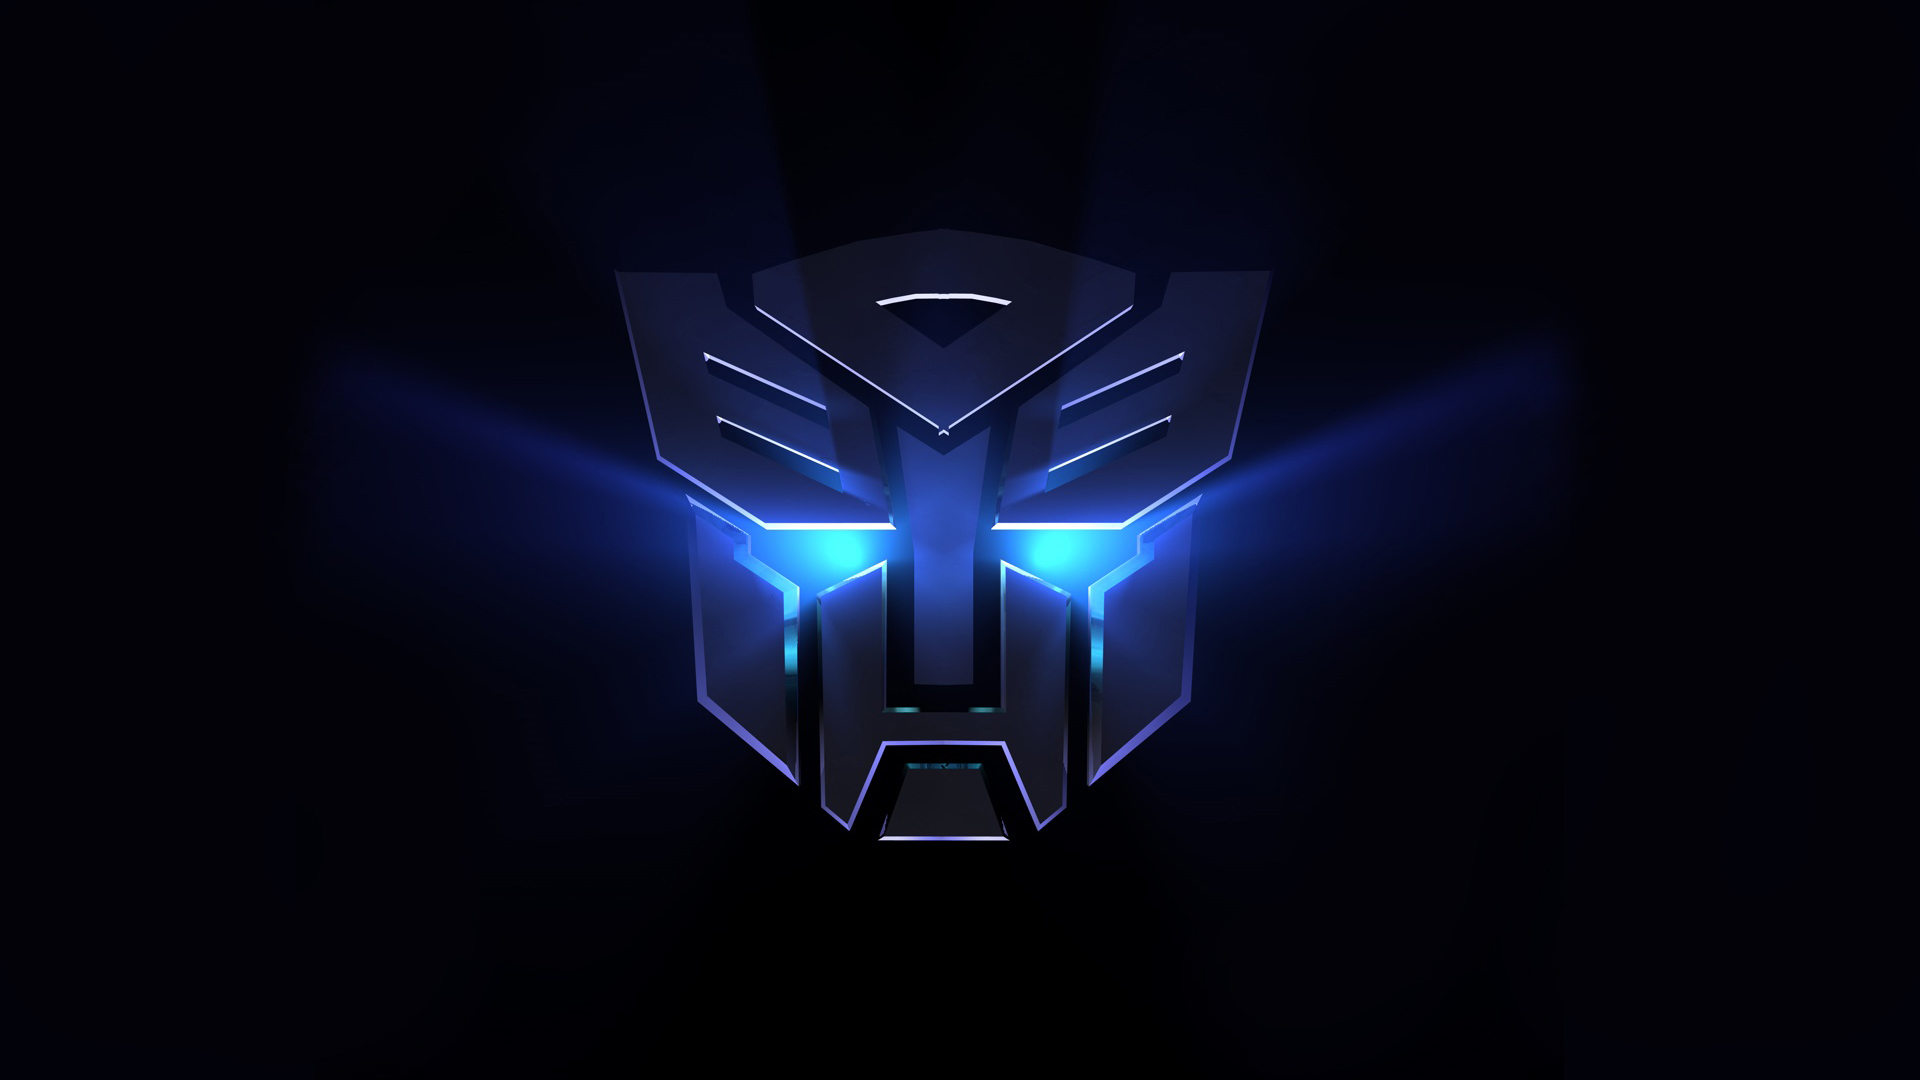 45 hd transformer wallpapers backgrounds for free download - Transformers desktop backgrounds ...